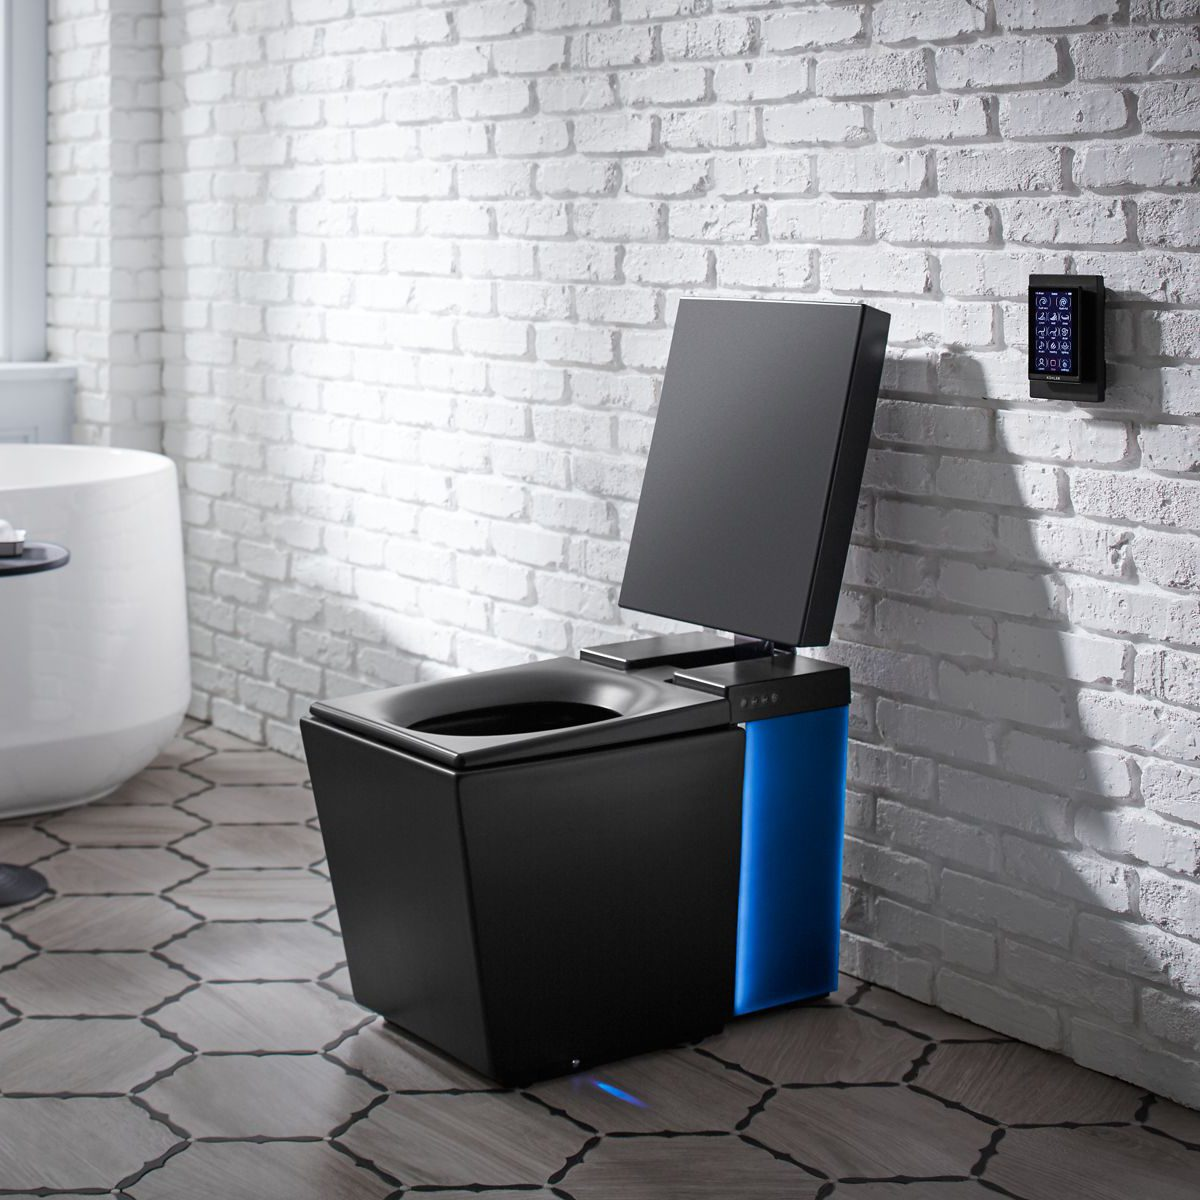 Kohler S New Smart Bathroom Products Can Connect To Alexa